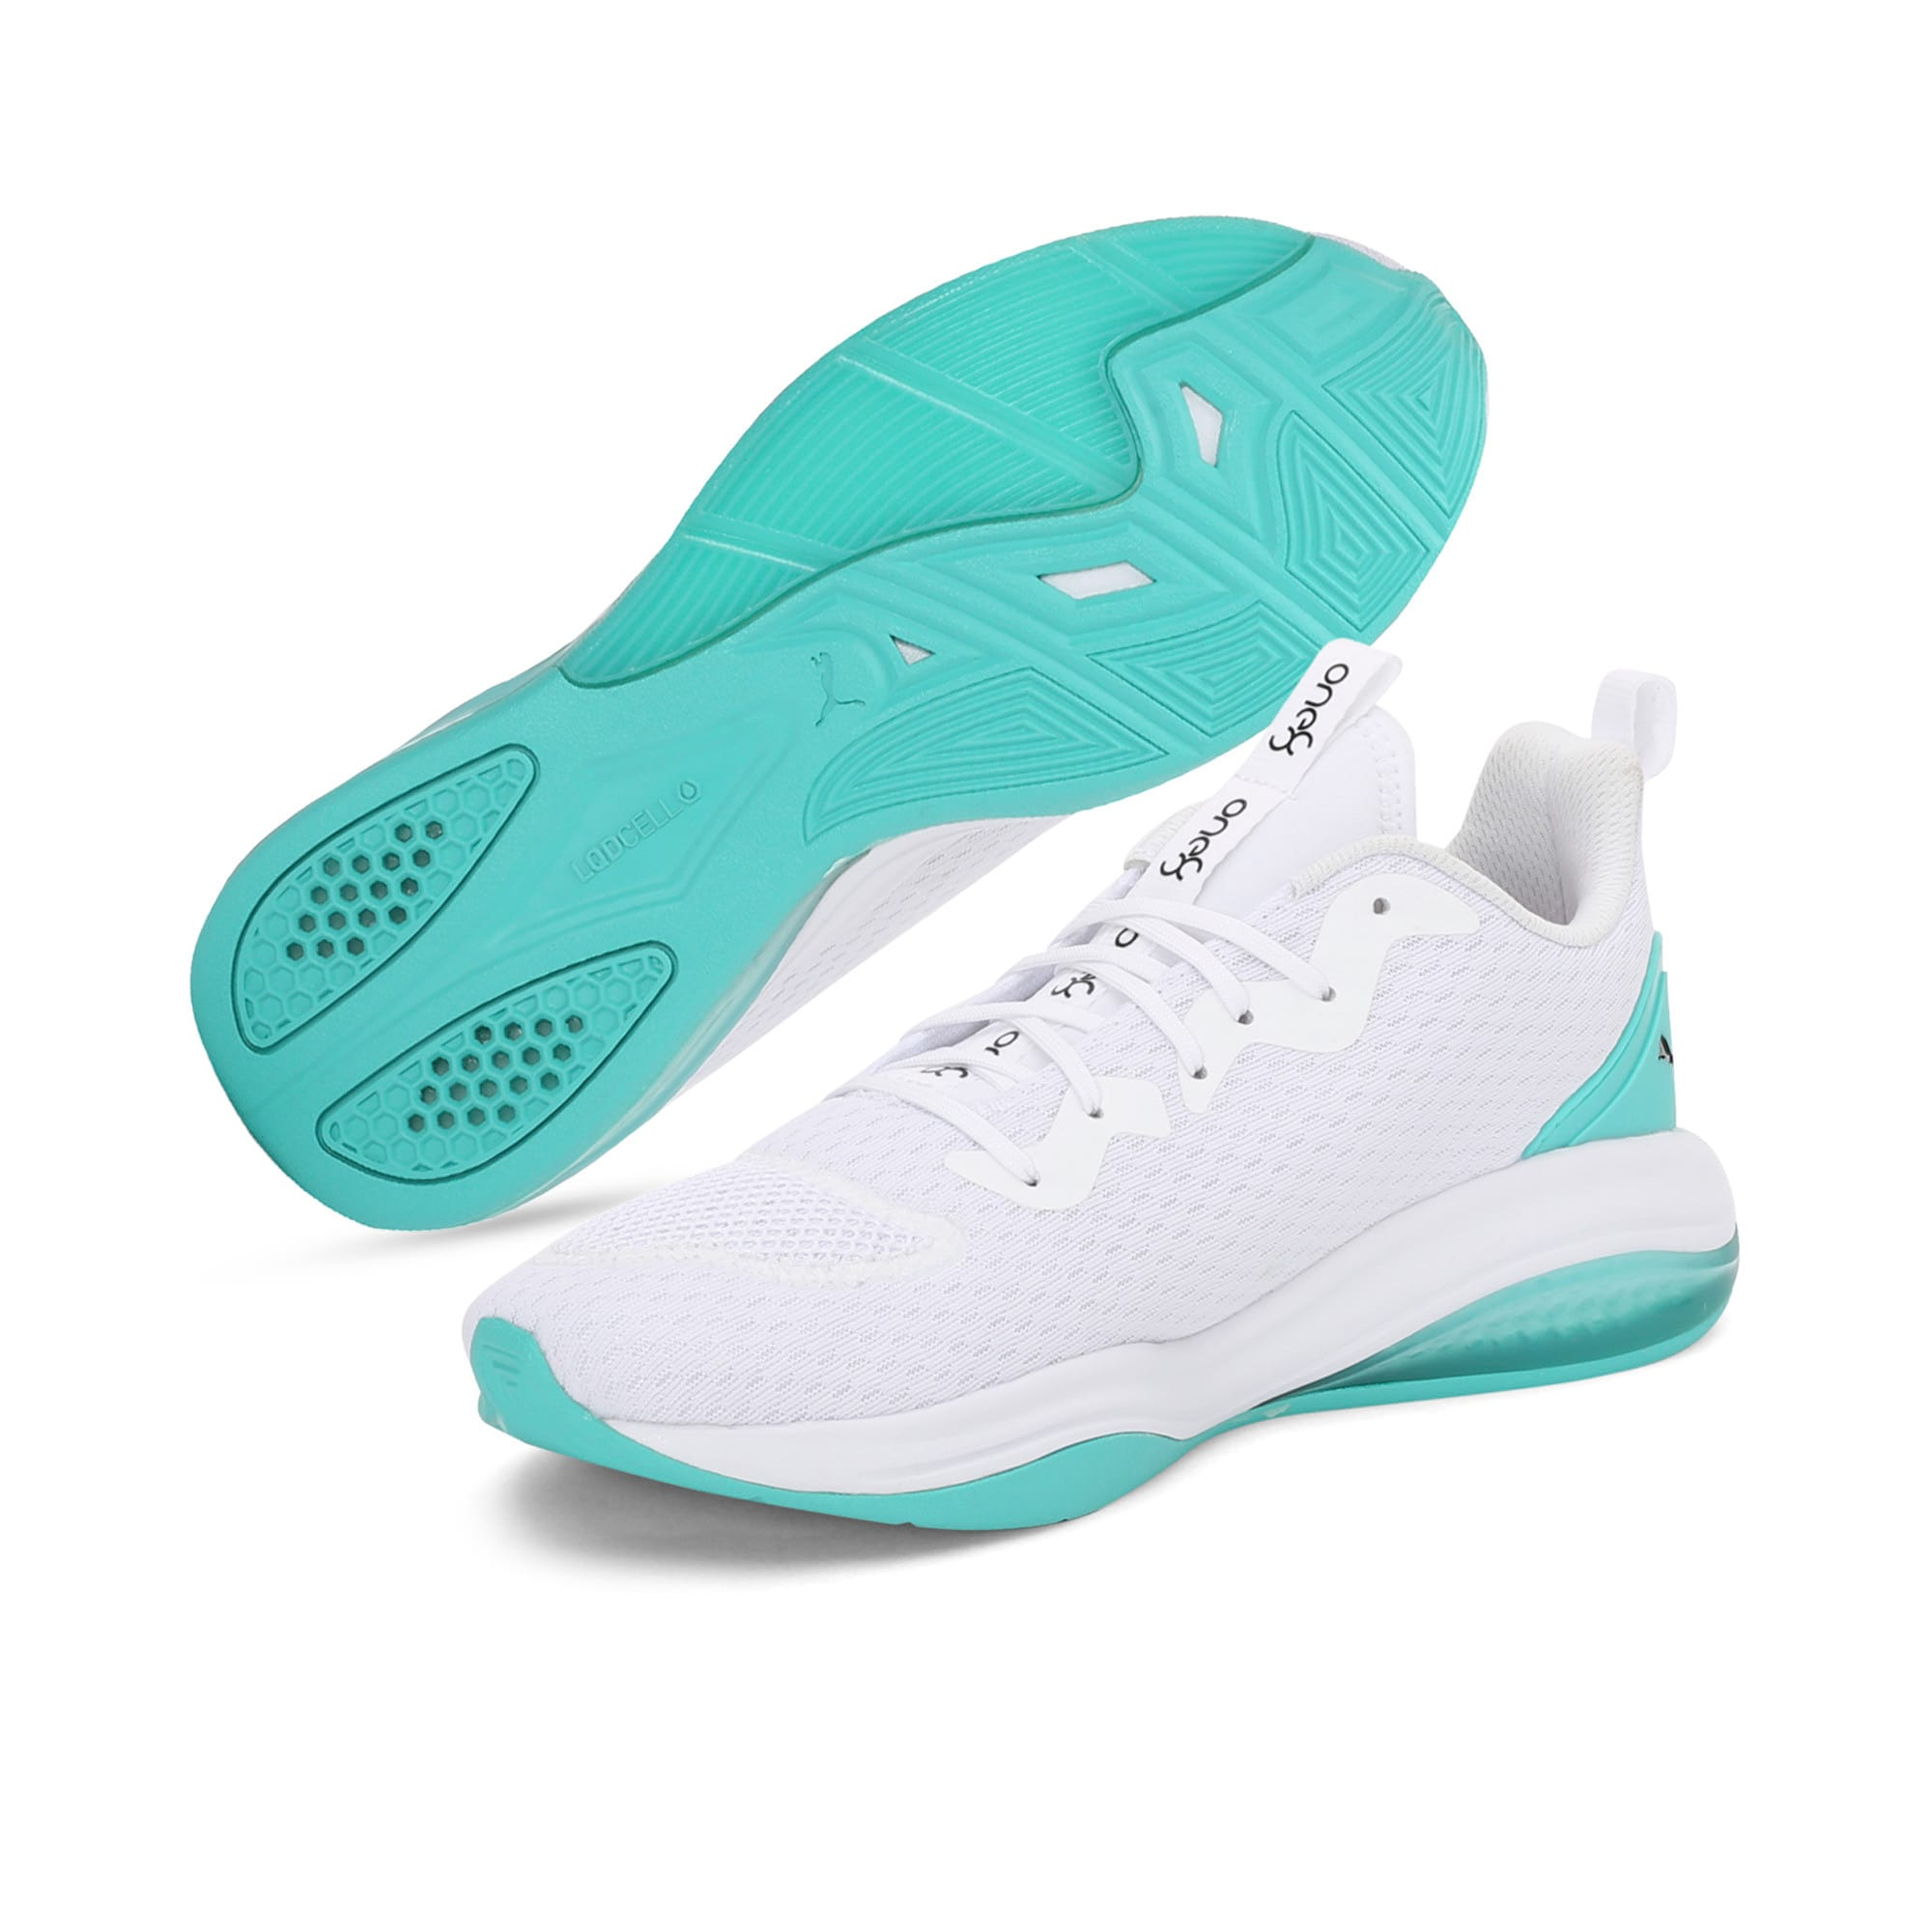 Thumbnail 2 of LQDCELL Tension one8 Men's Training Shoes, Puma White-Blue Turquoise, medium-IND